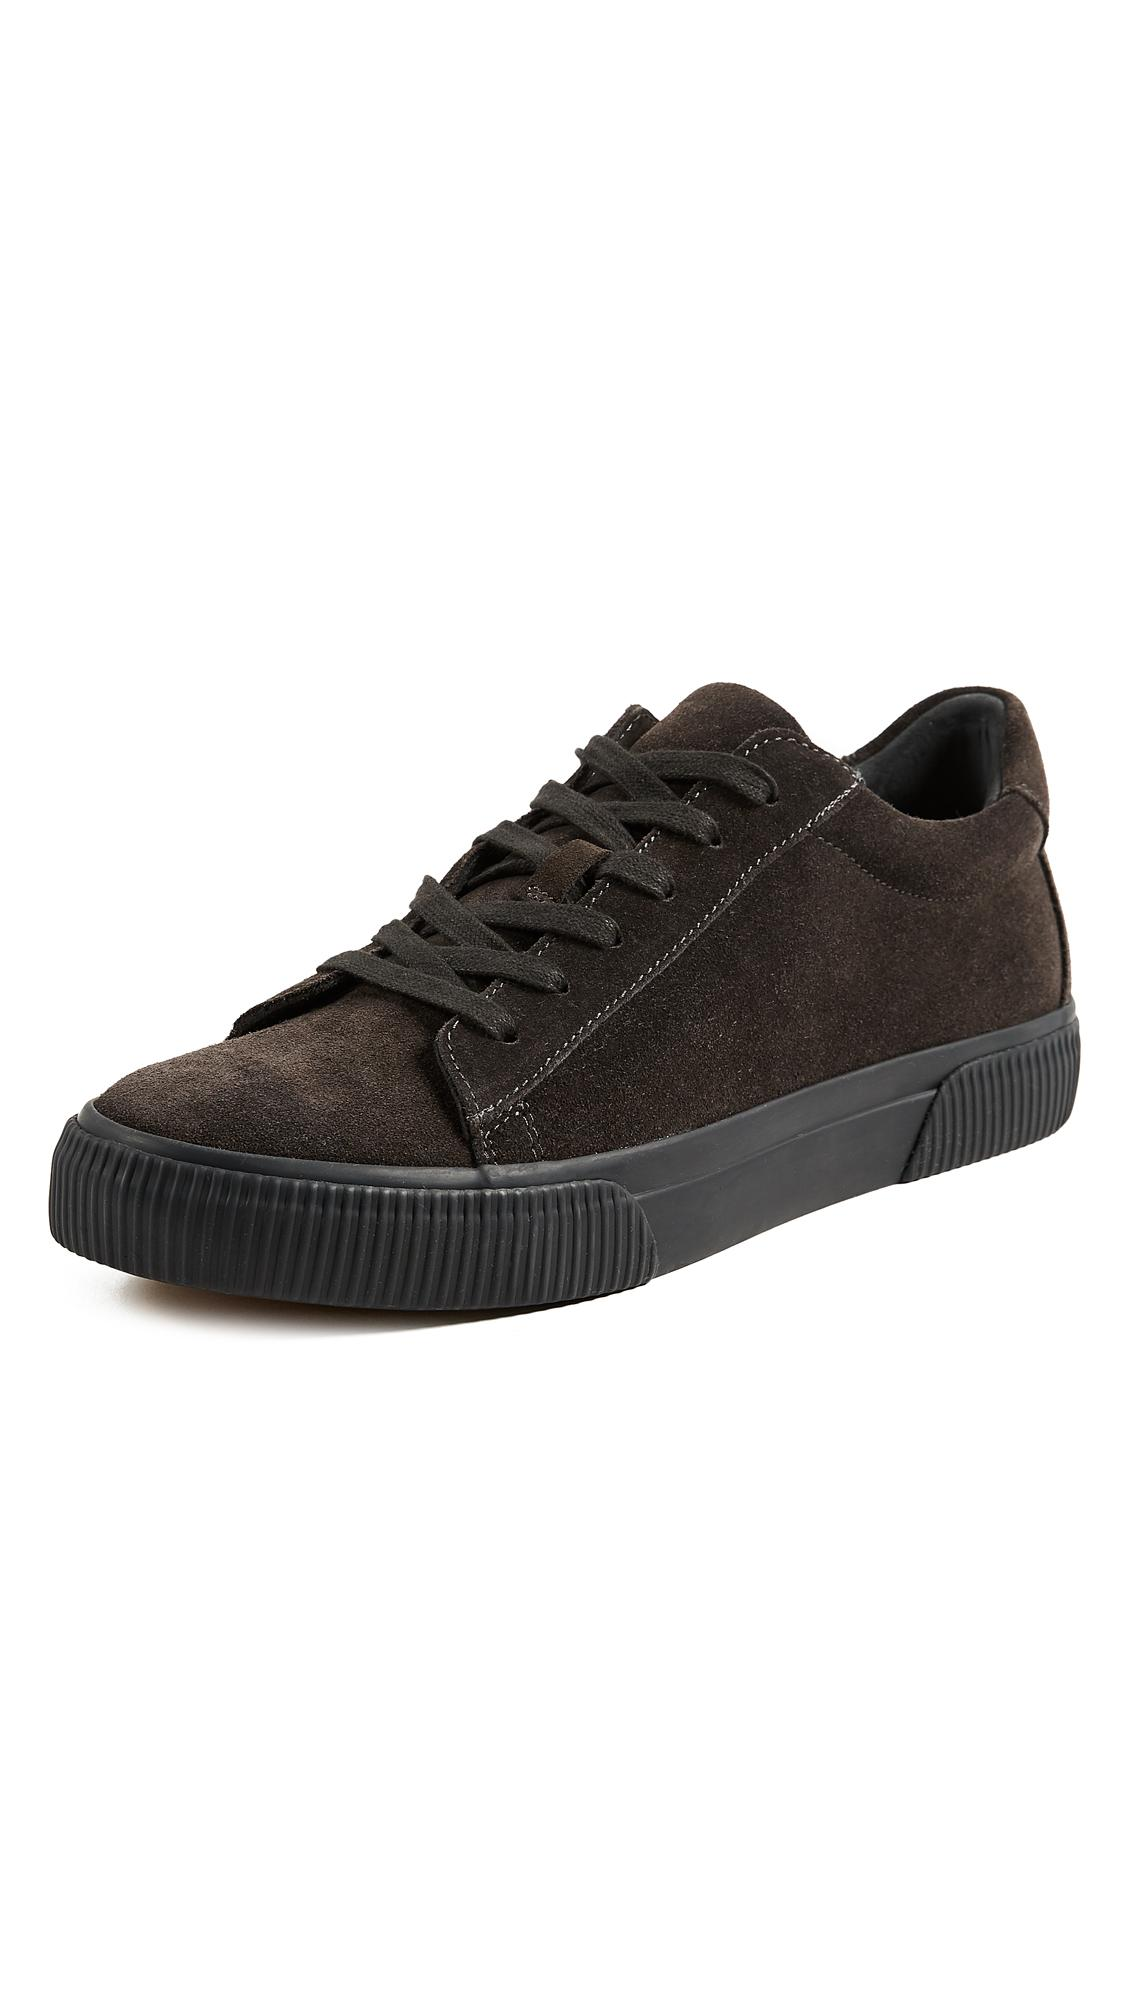 Vince Kurtis Weatherproof Sneakers In Heather Carbon